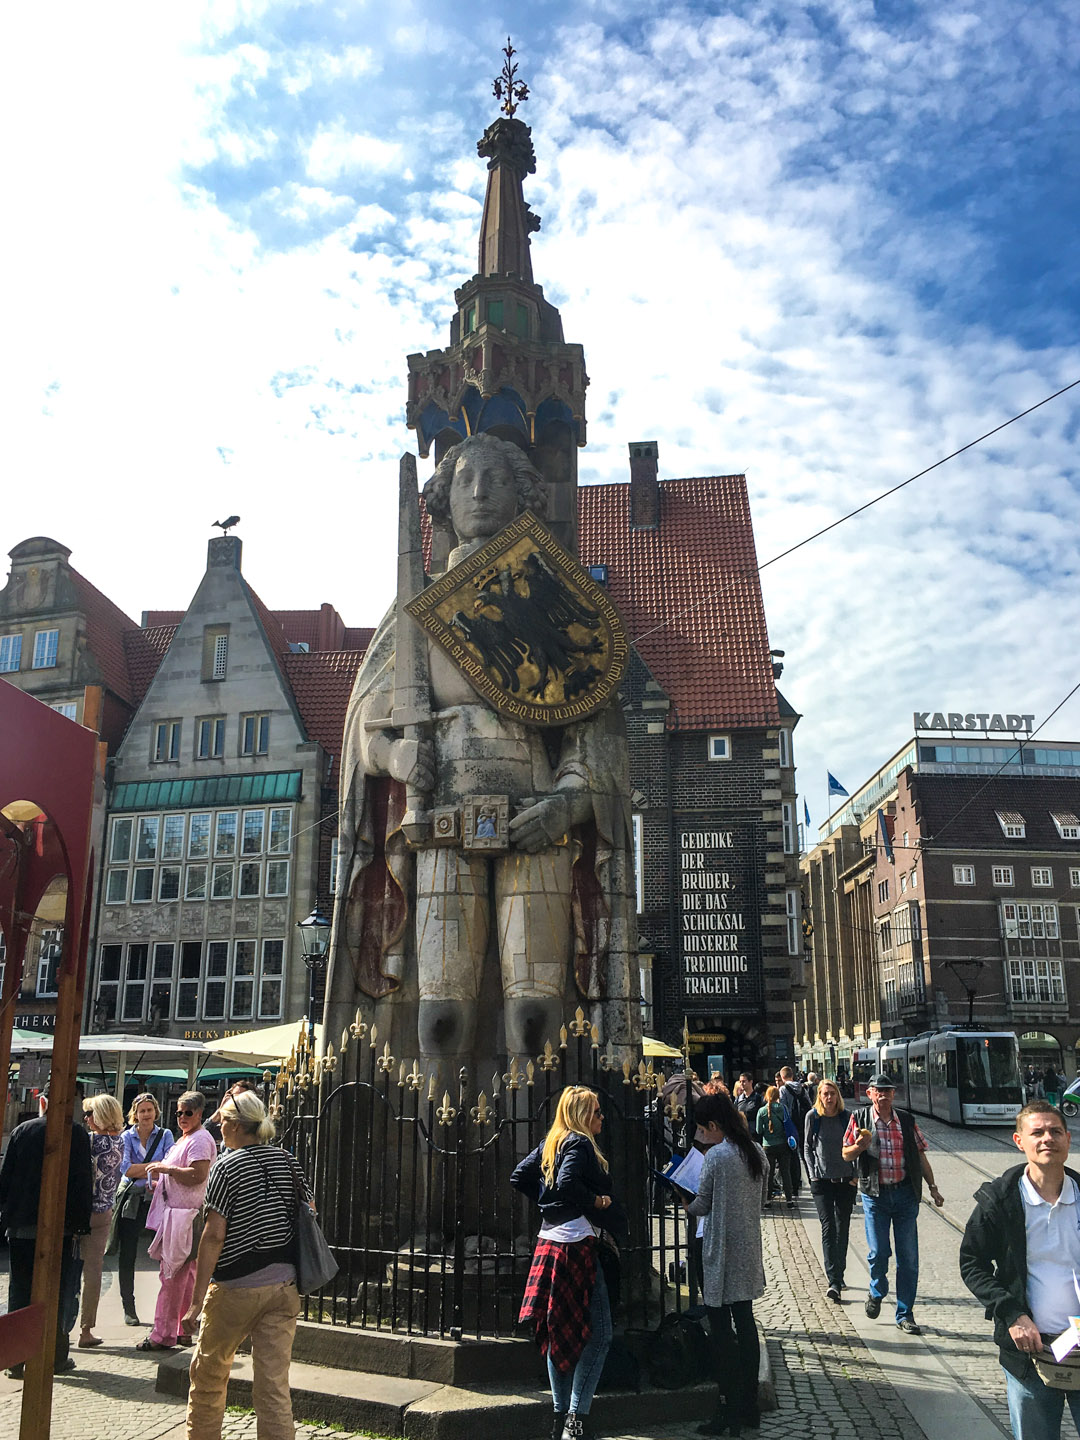 Statue of Roland dating back to 1404 making it the largest free-standing statue of the German Middle Ages.